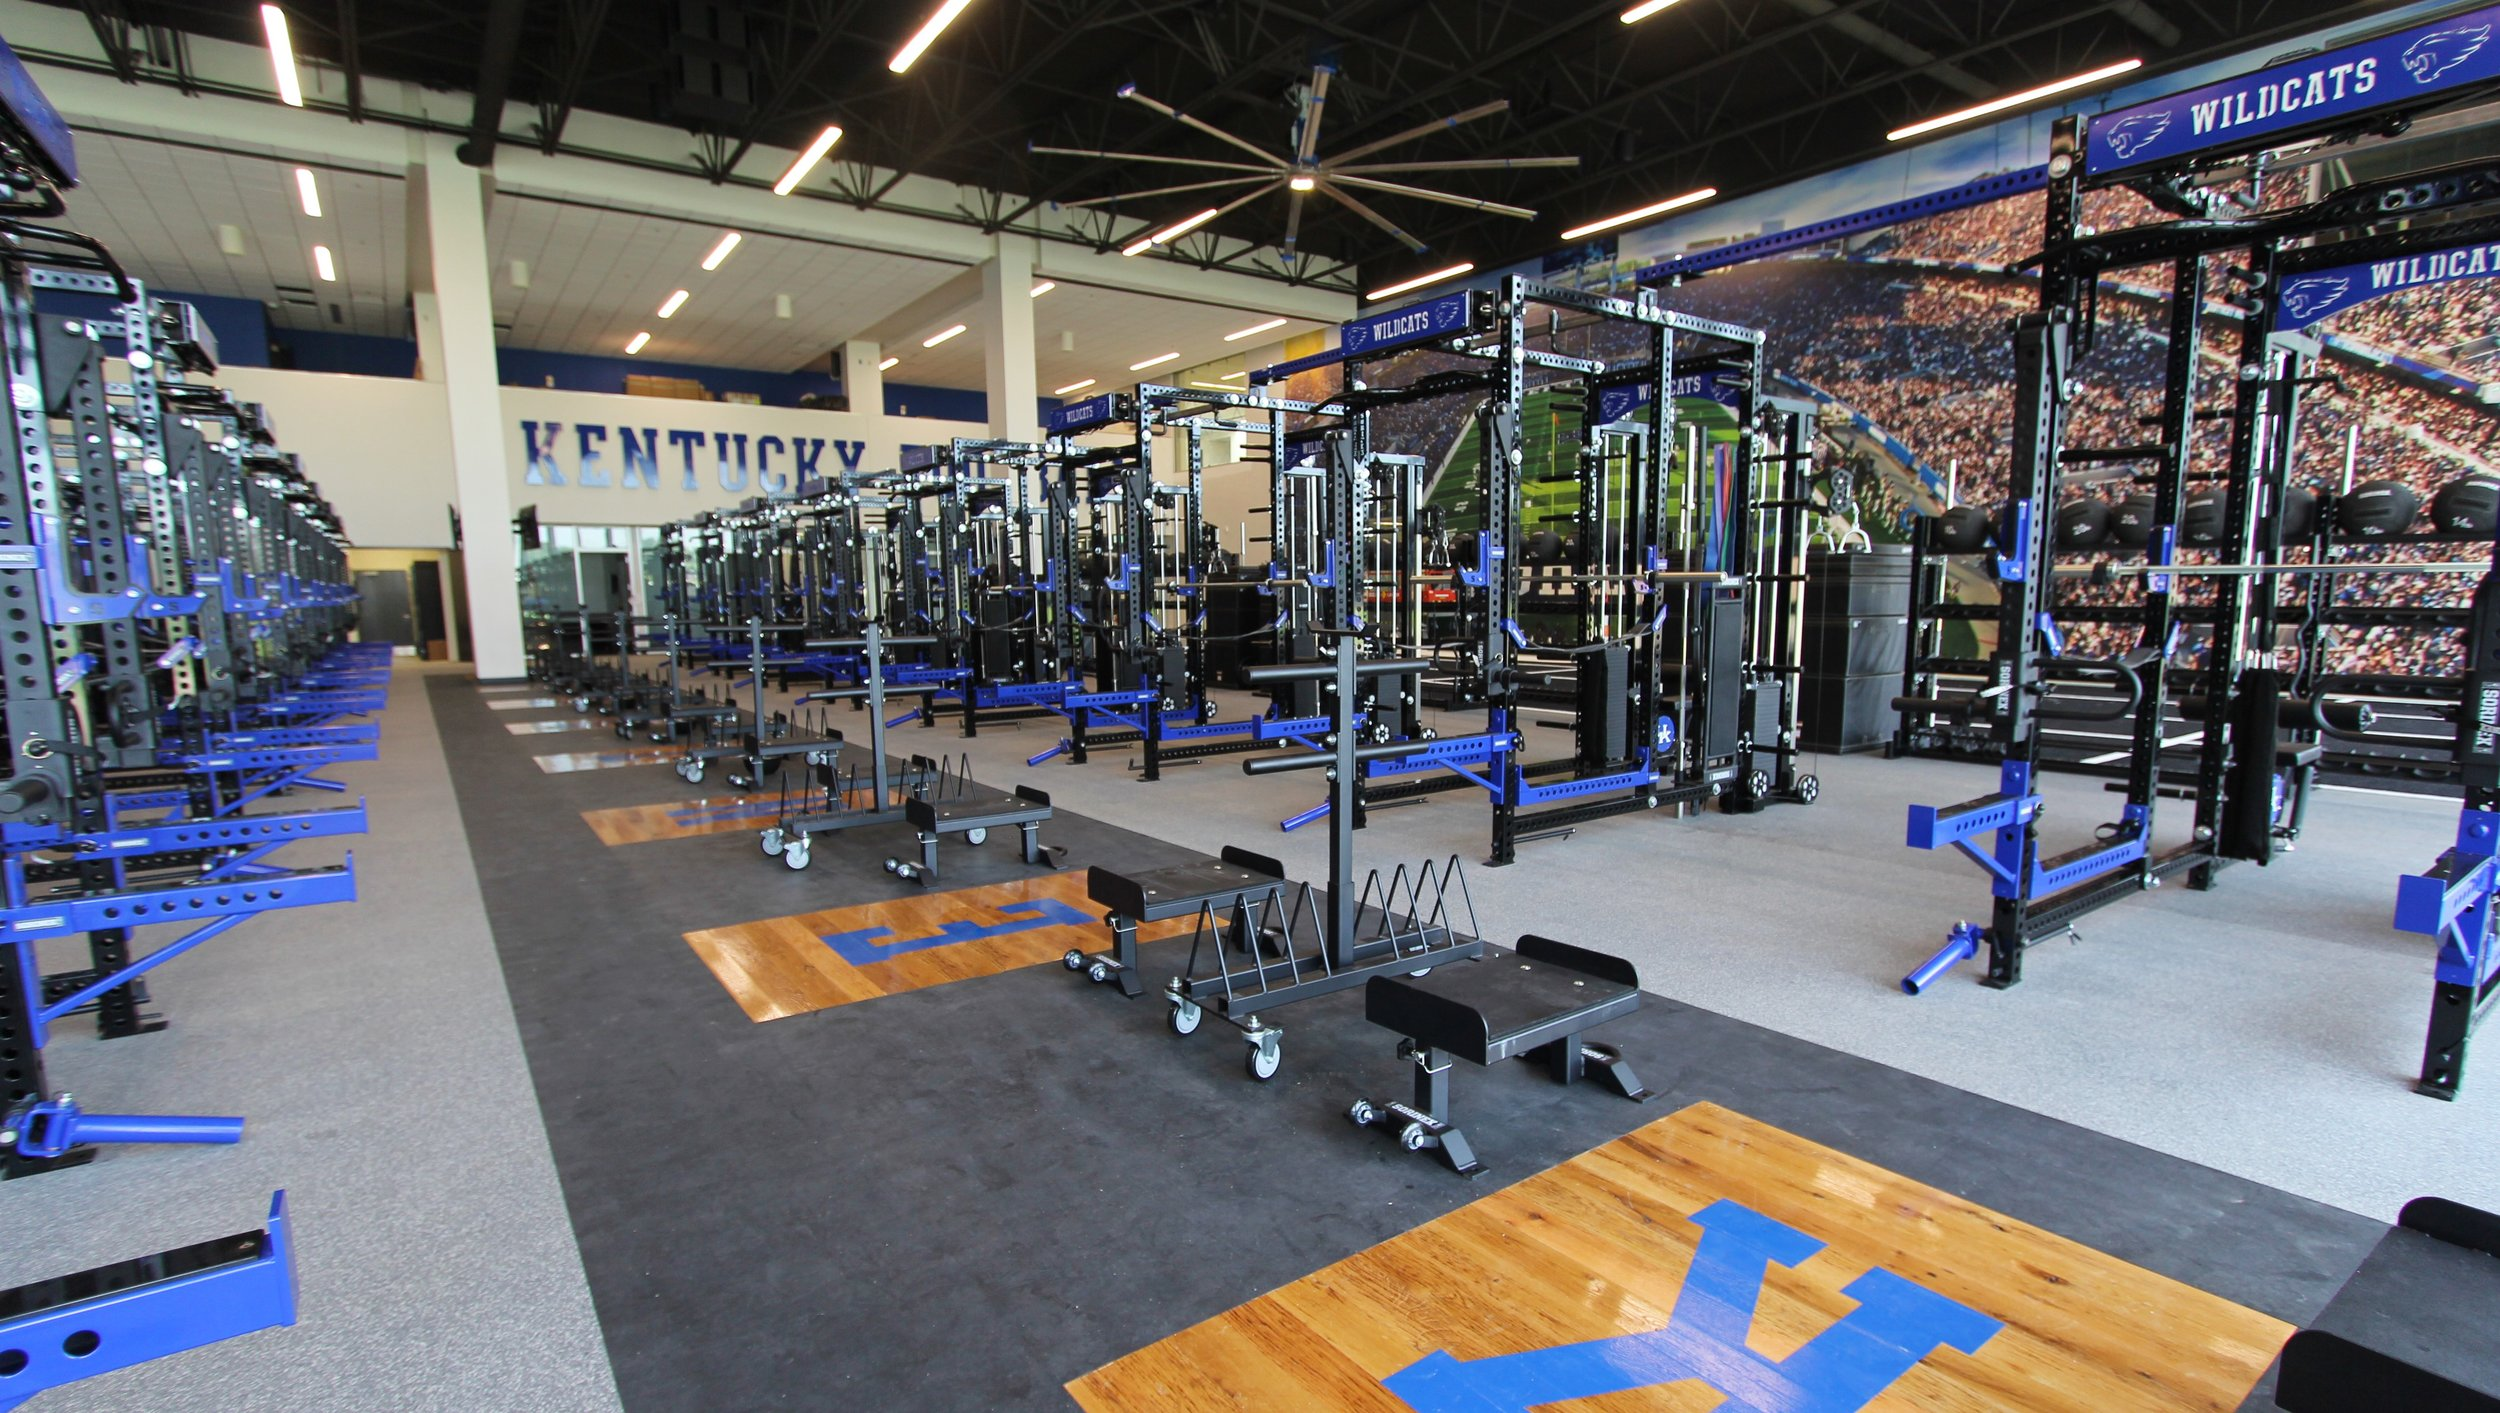 UK FTC WEIGHT ROOM.JPG